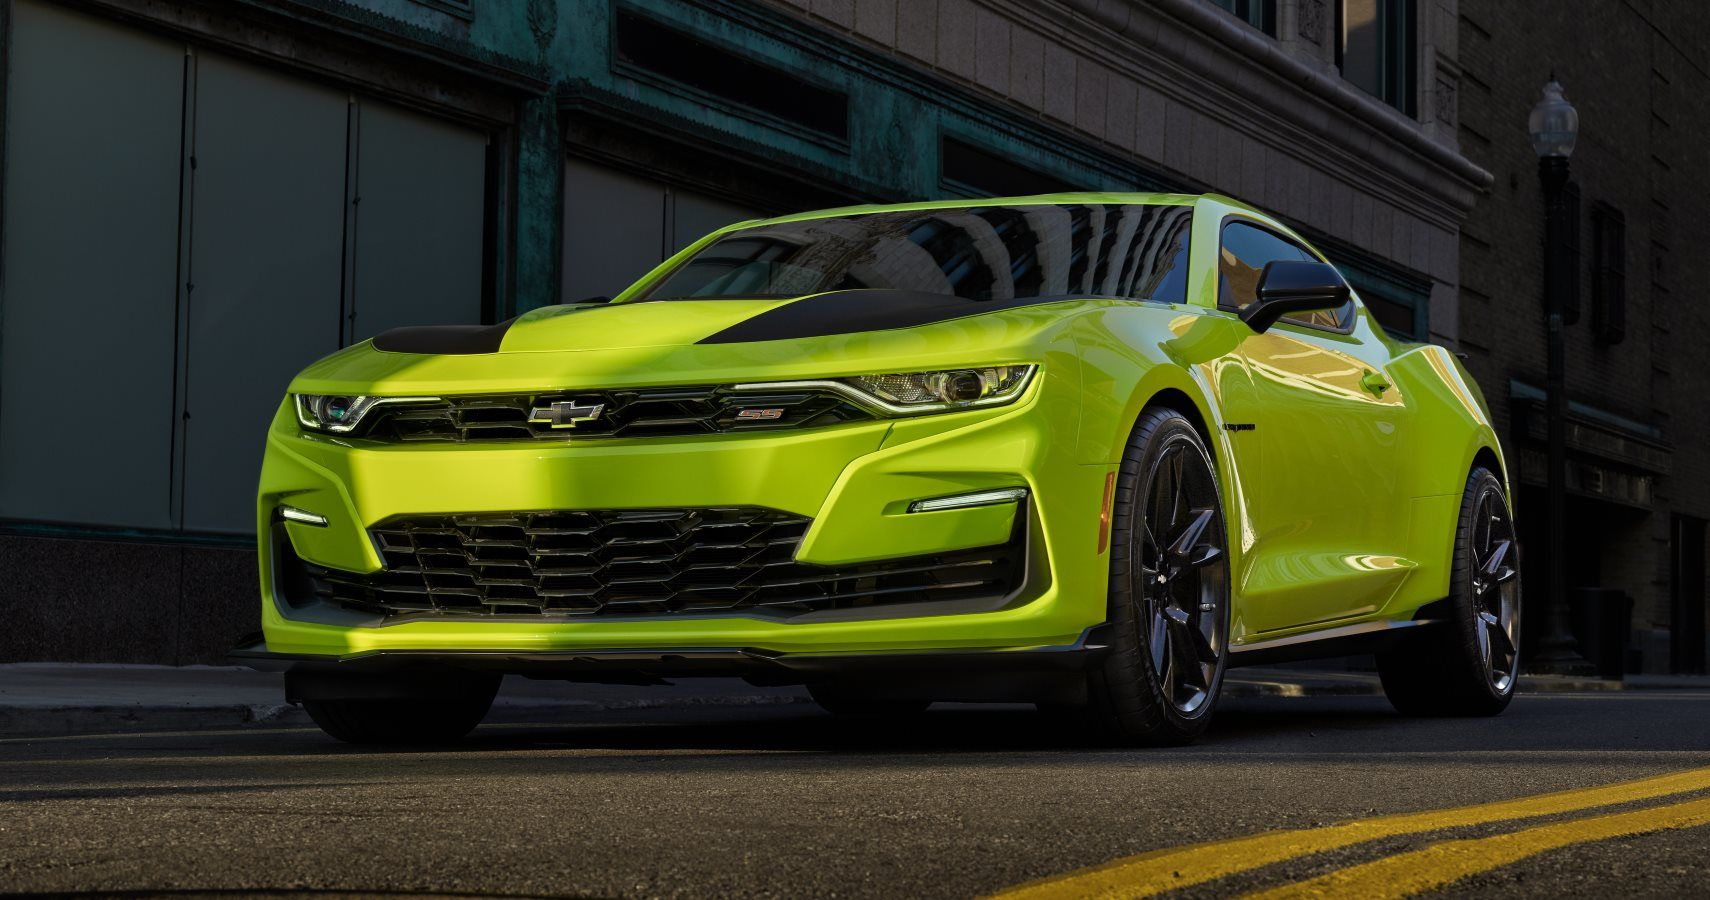 2019 Chevrolet Camaro To Have Extremely Bright Yellow Color Option